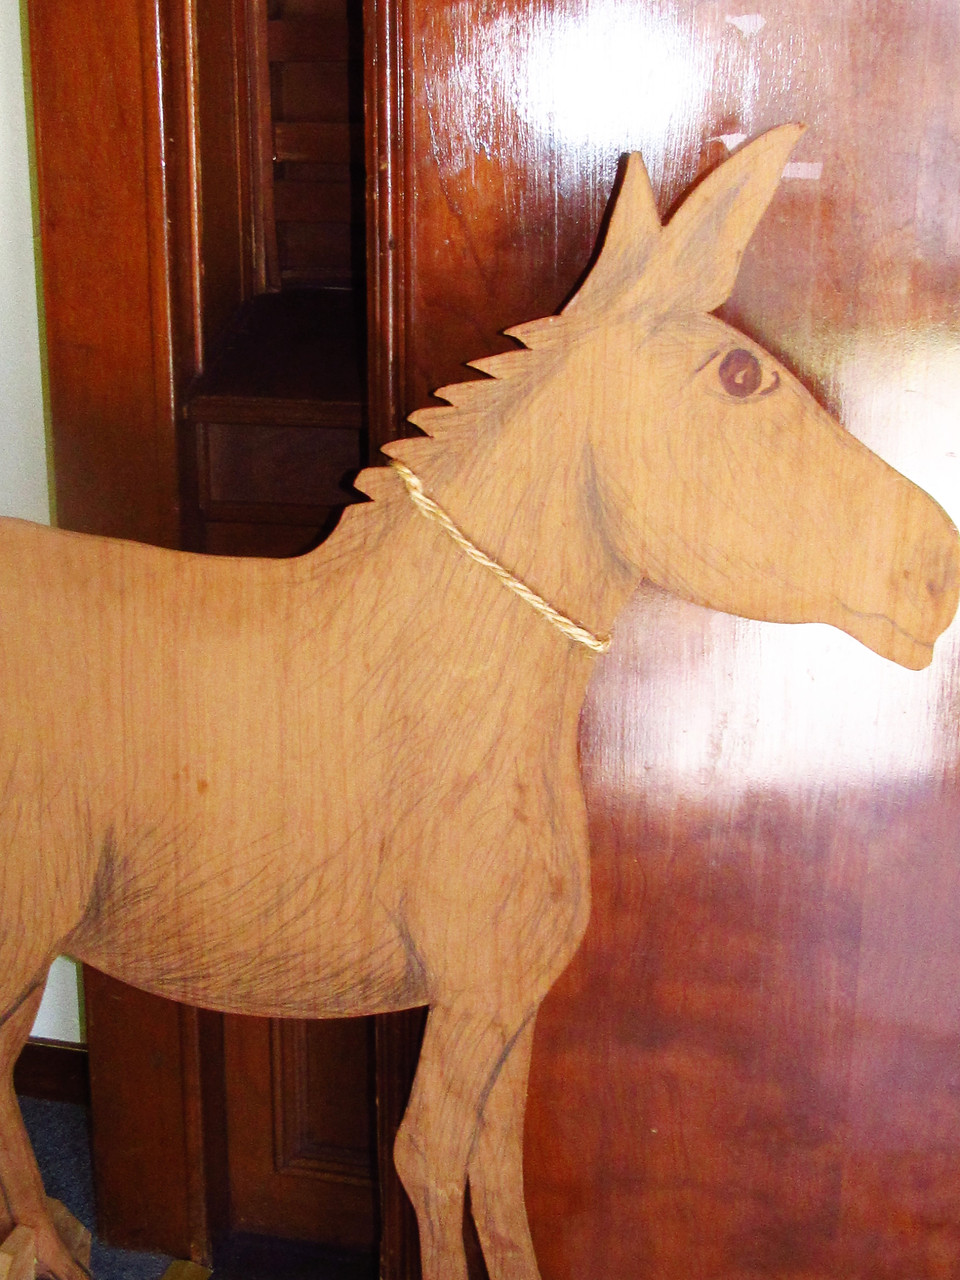 This is the donkey used by the Sunday School during their palm procession.